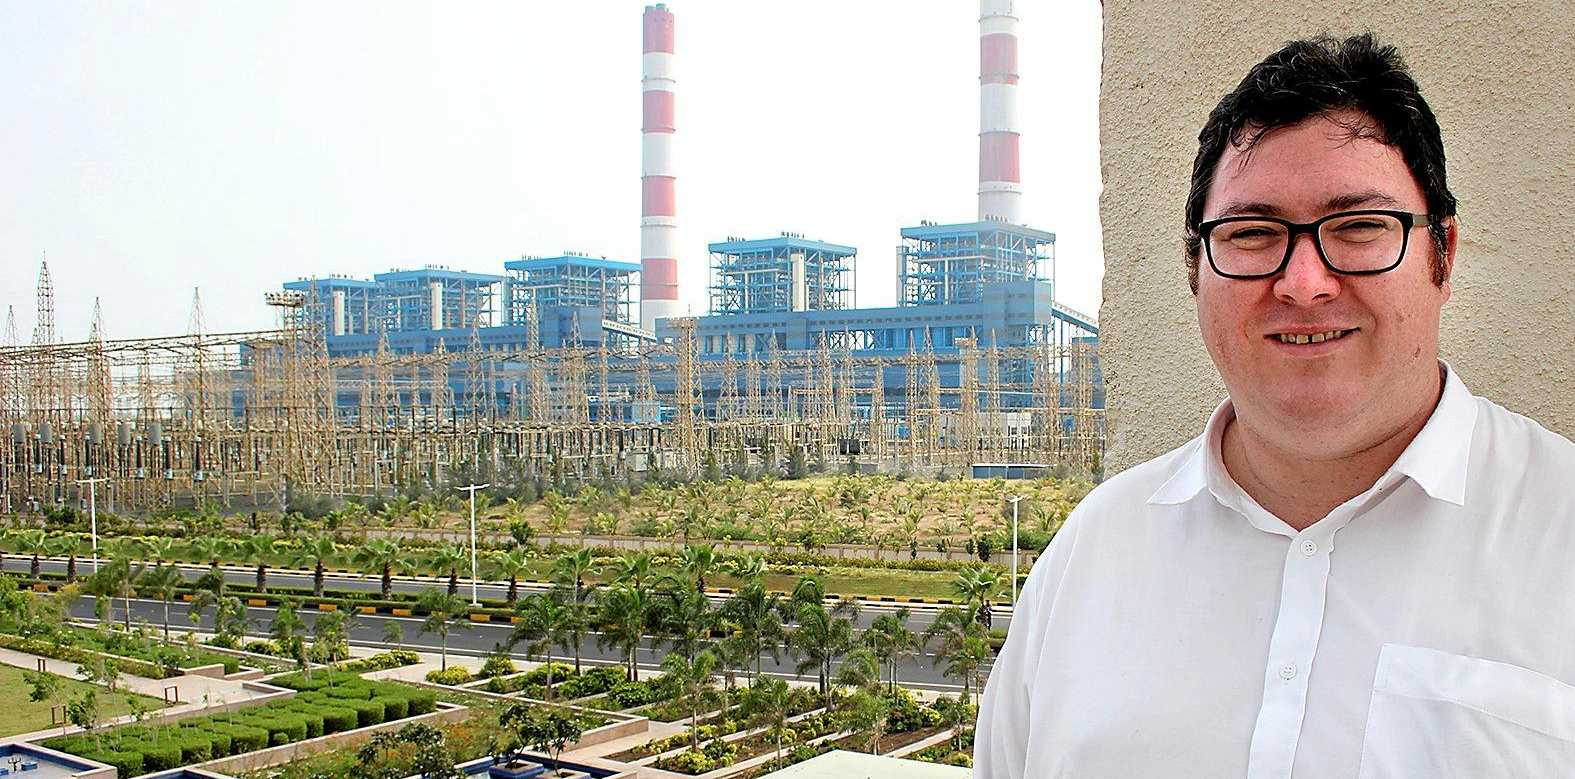 CLEAN COAL: Federal member for Dawson, George Christensen, at Adanis ultra-super-critical coal-fired power generator at the Port of Mundra in India.